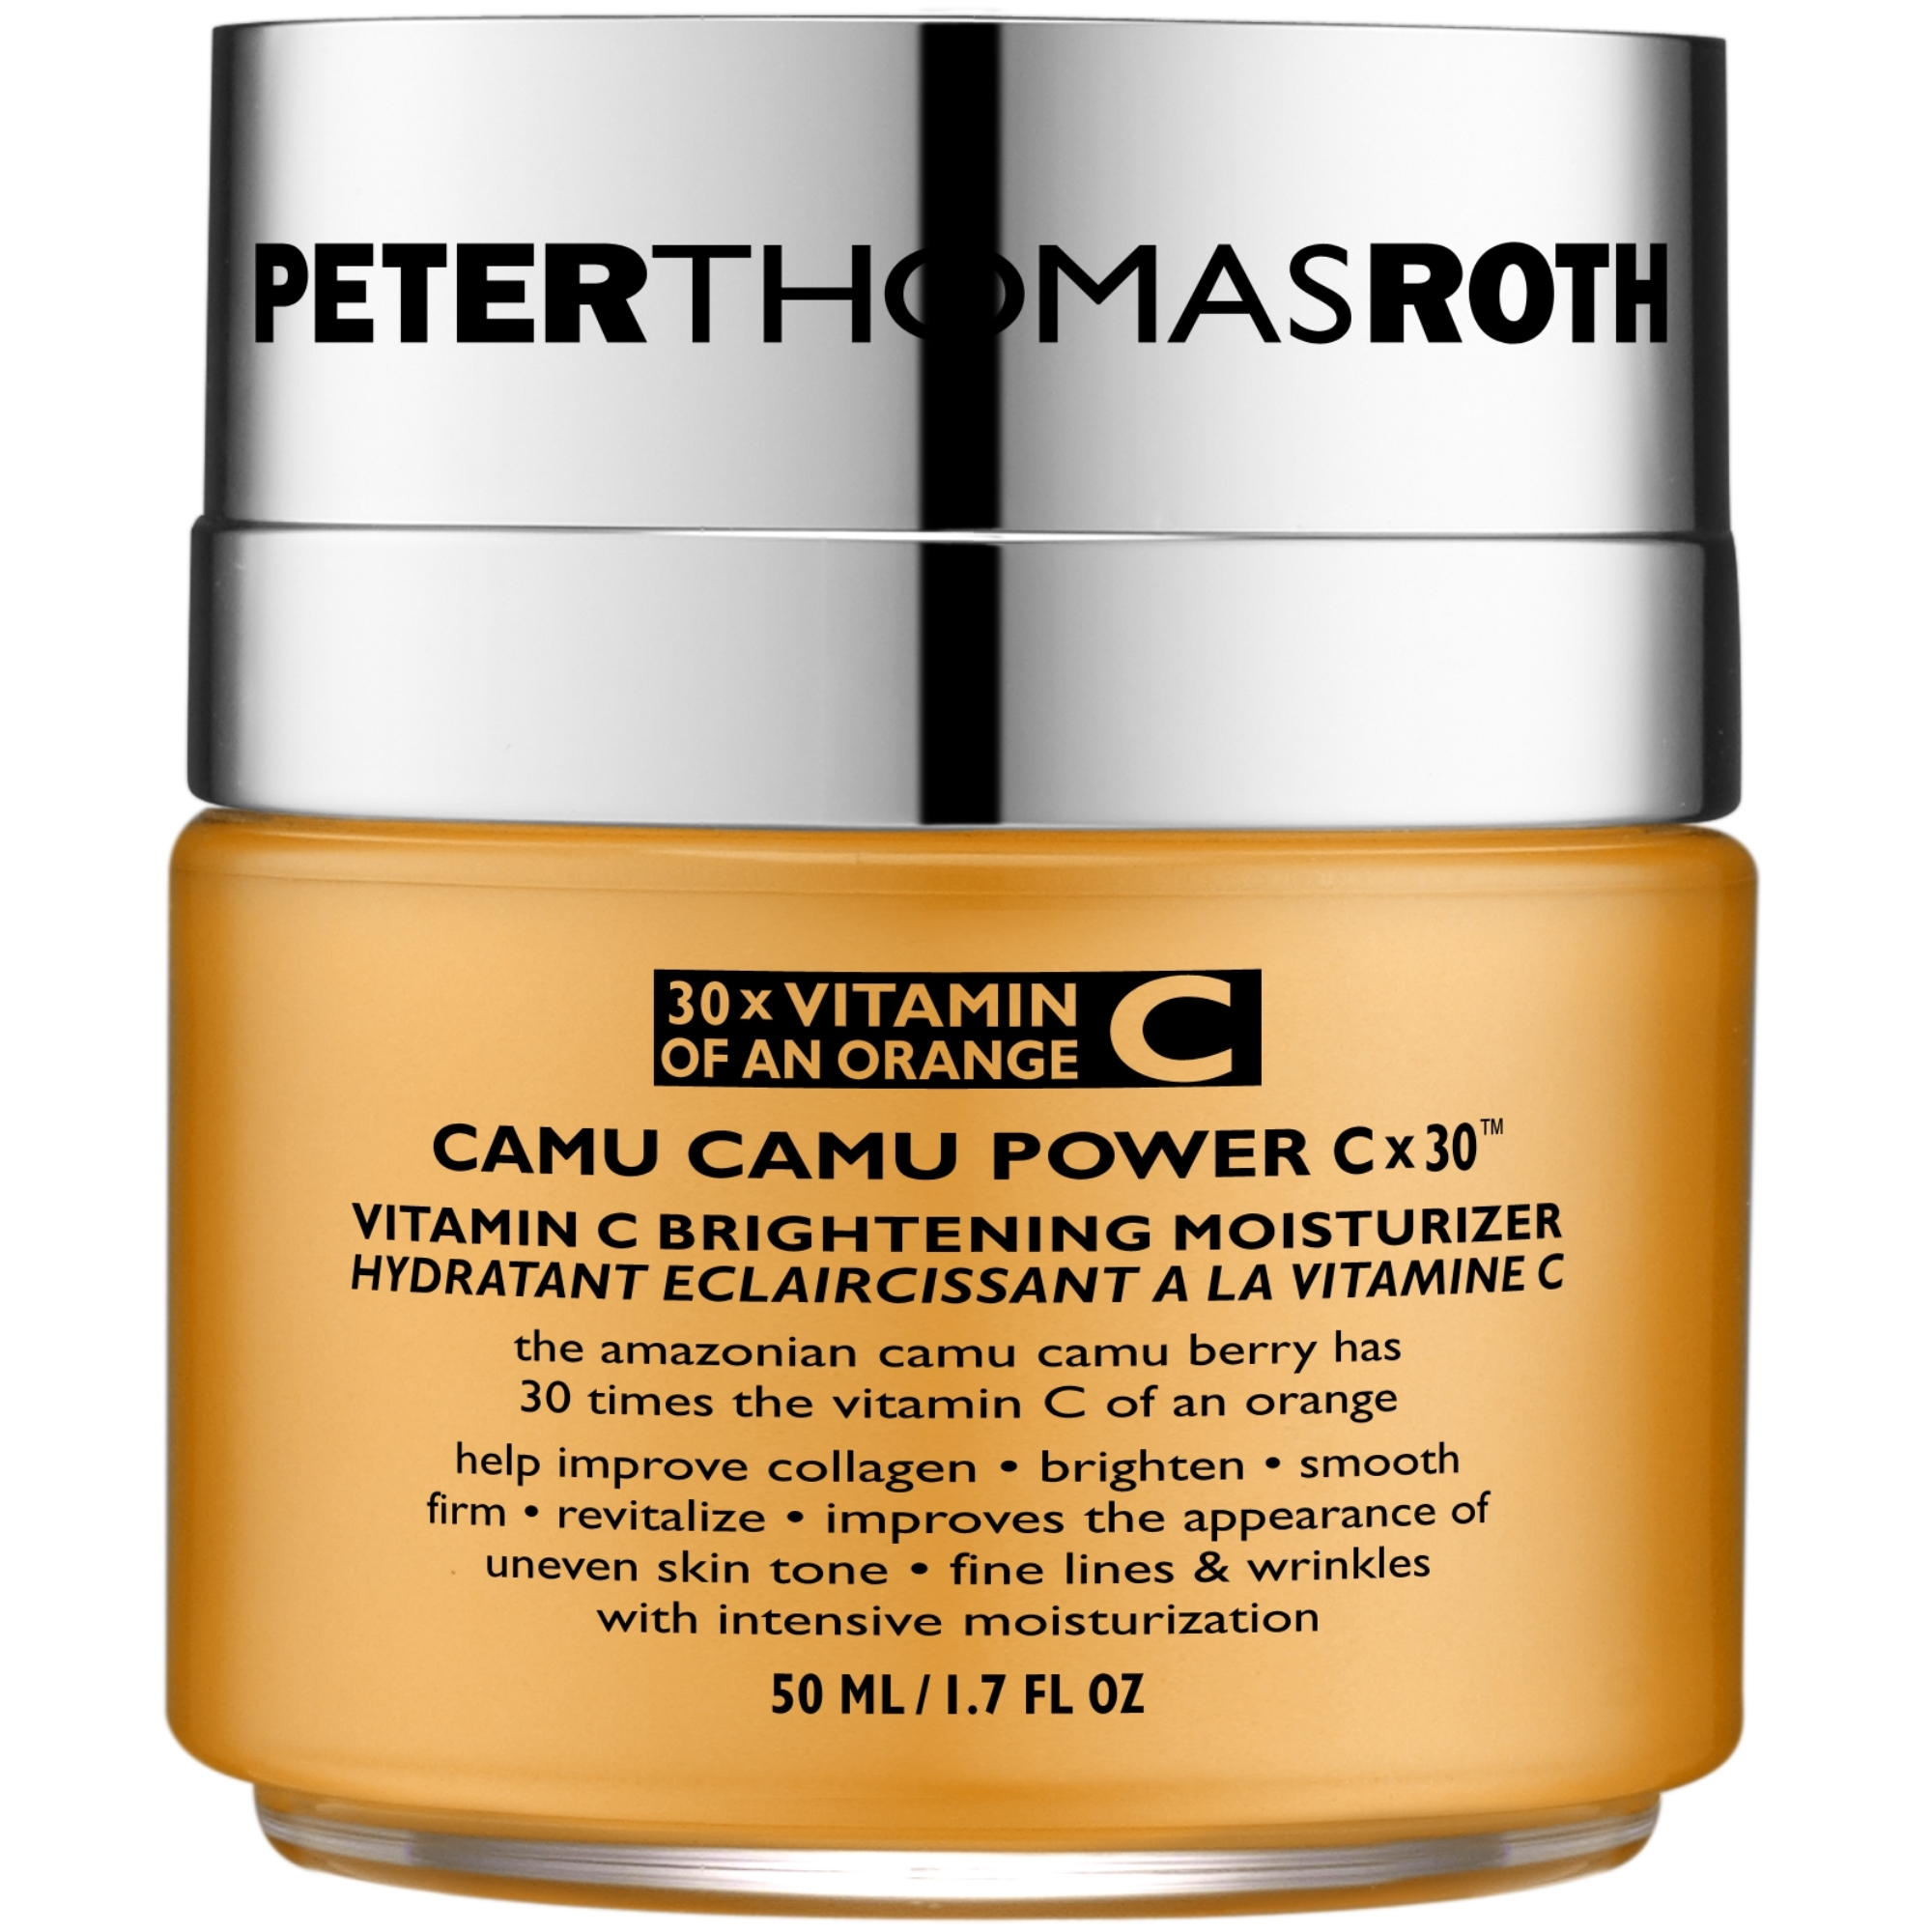 Camu Camu Power Cx30 Vitamin C  Brightening Moisturizer 50 ml